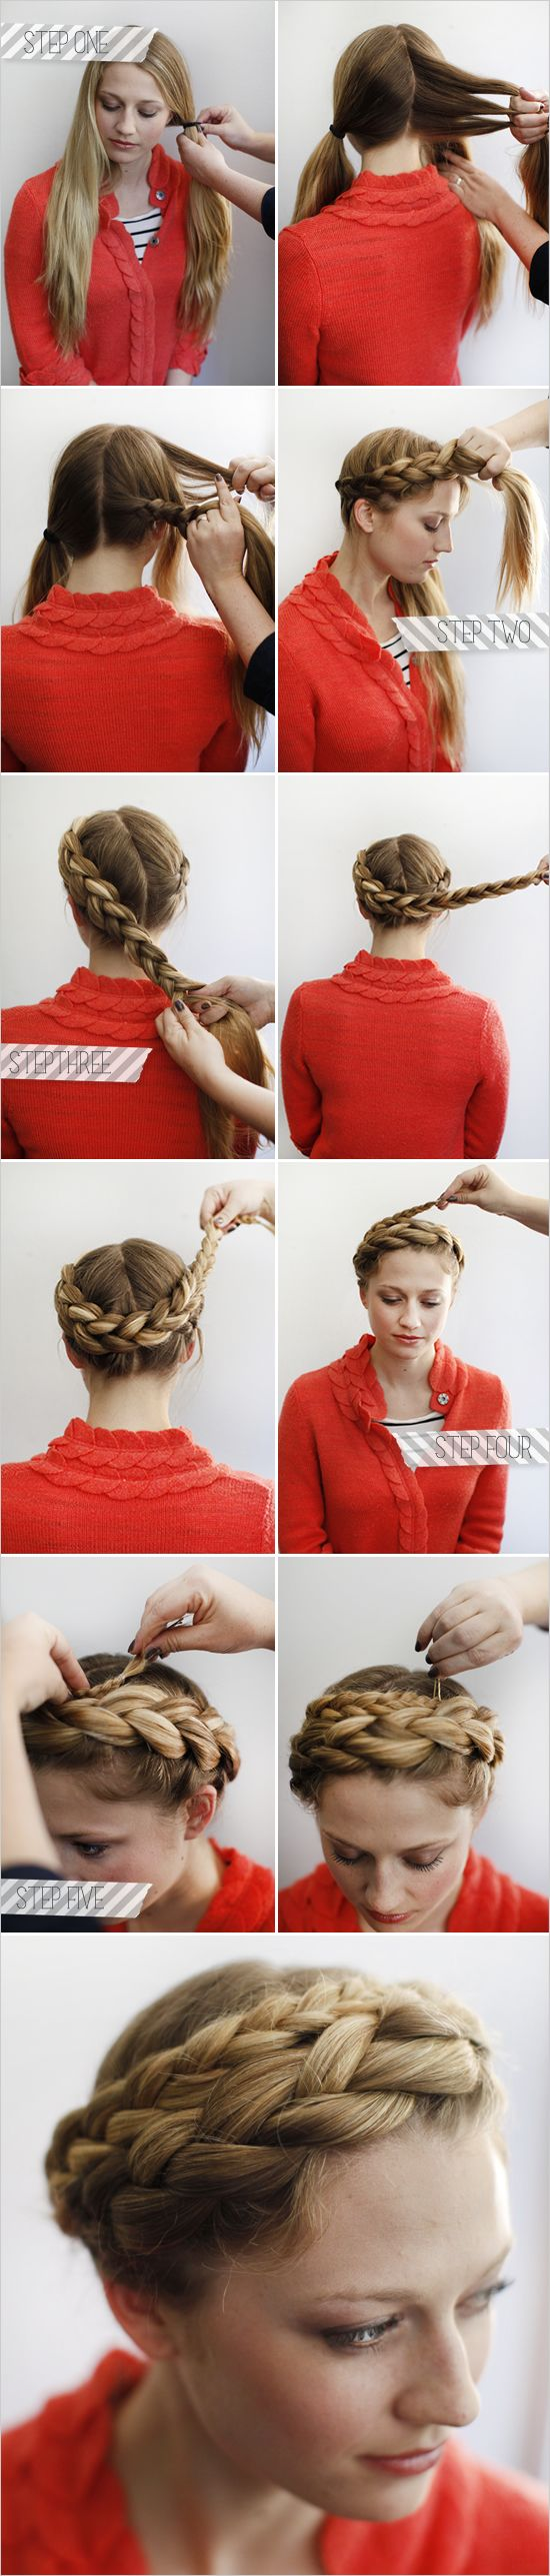 "French crown braid. ""How to Halo Braid"" tutorial by HairstylesDesign.com."